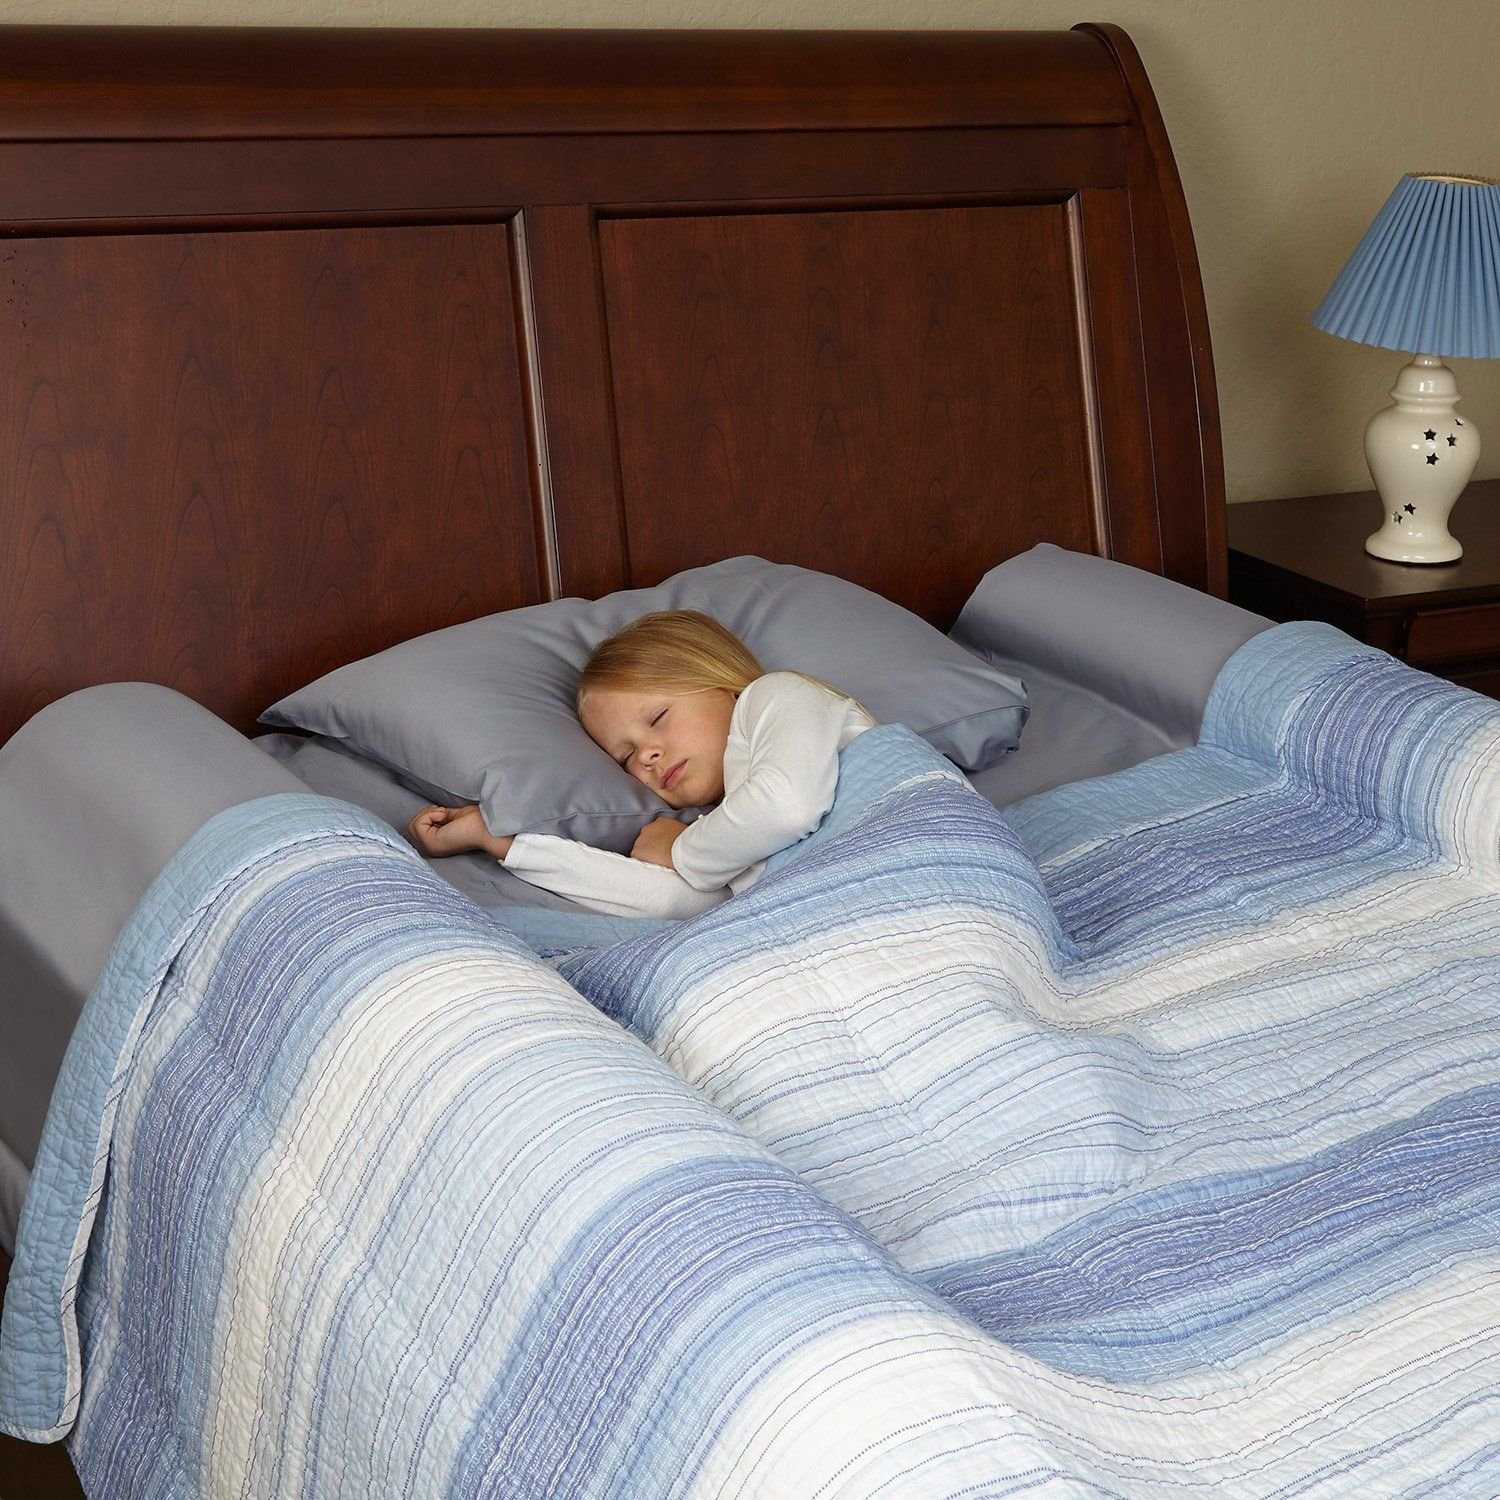 Toddler bed rail pictures to pin on pinterest - Find This Pin And More On Baby Product Hiccapop Foam Bed Bumpers Toddler Bed Rails